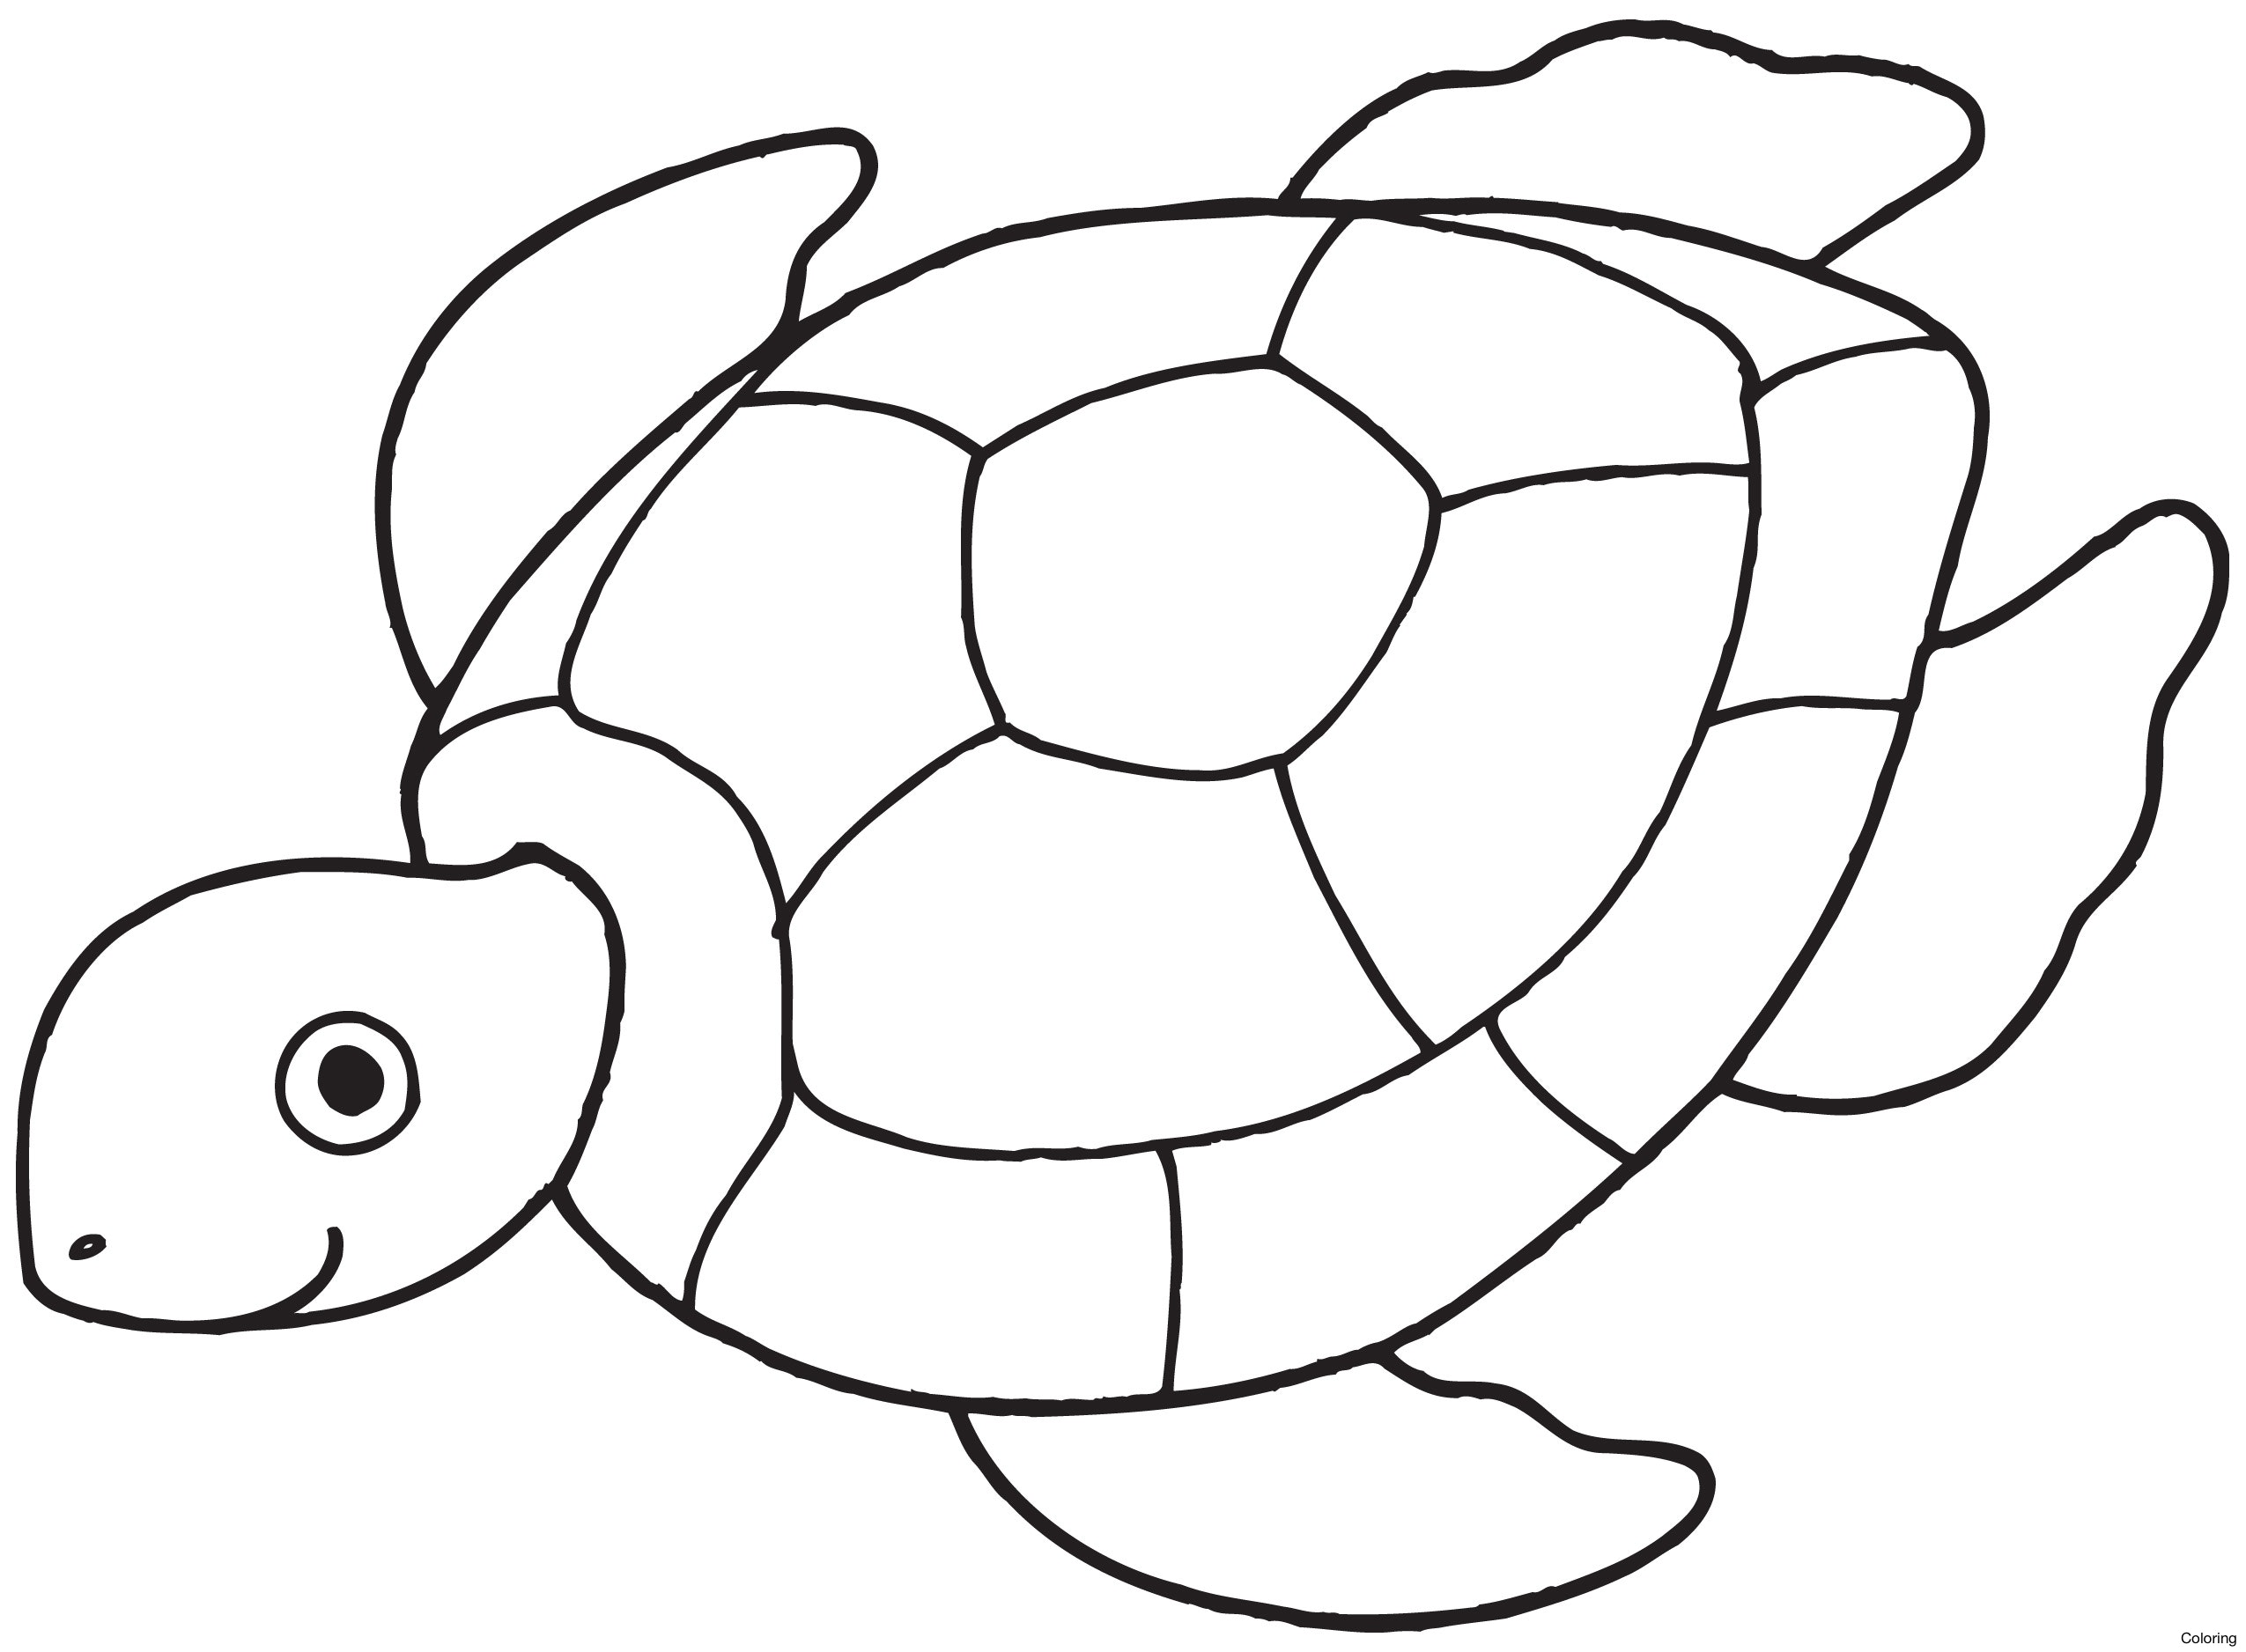 2550x1876 Simple Turtle Drawing 1000 Images About Drawings